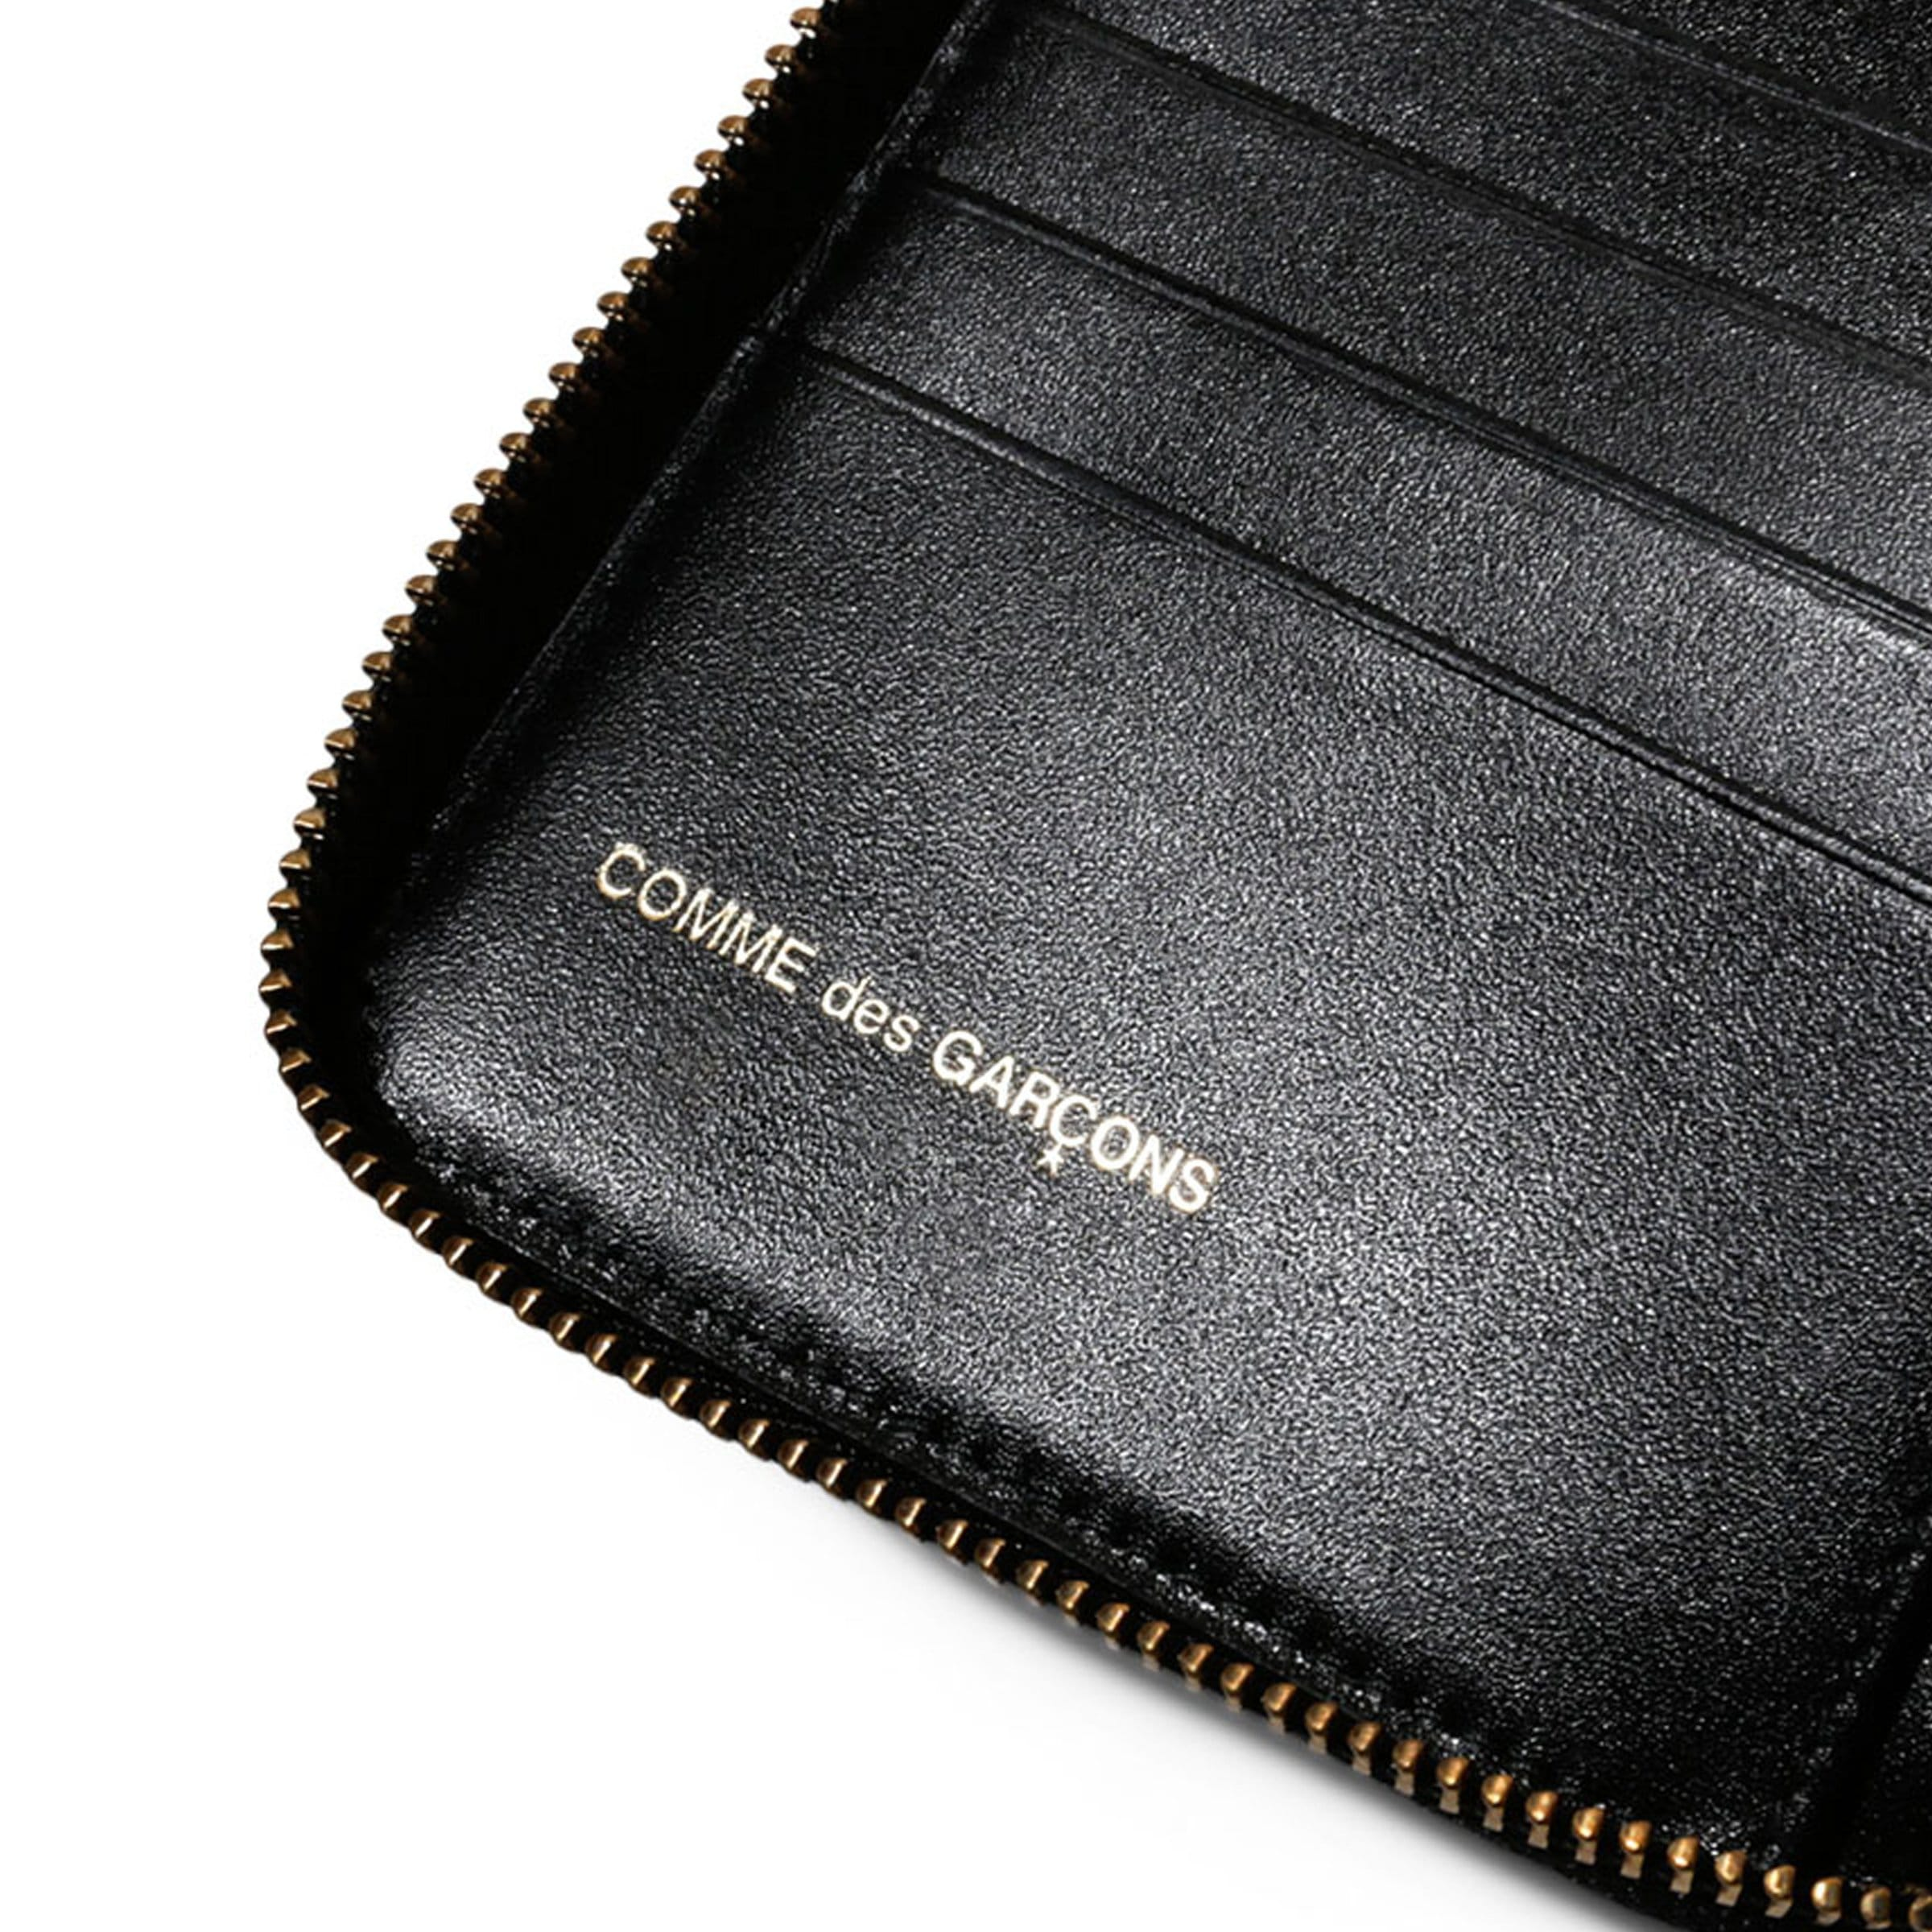 Comme Des Garçons Bags & Accessories BLACK / O/S DOTS PRINTED LEATHER LINE